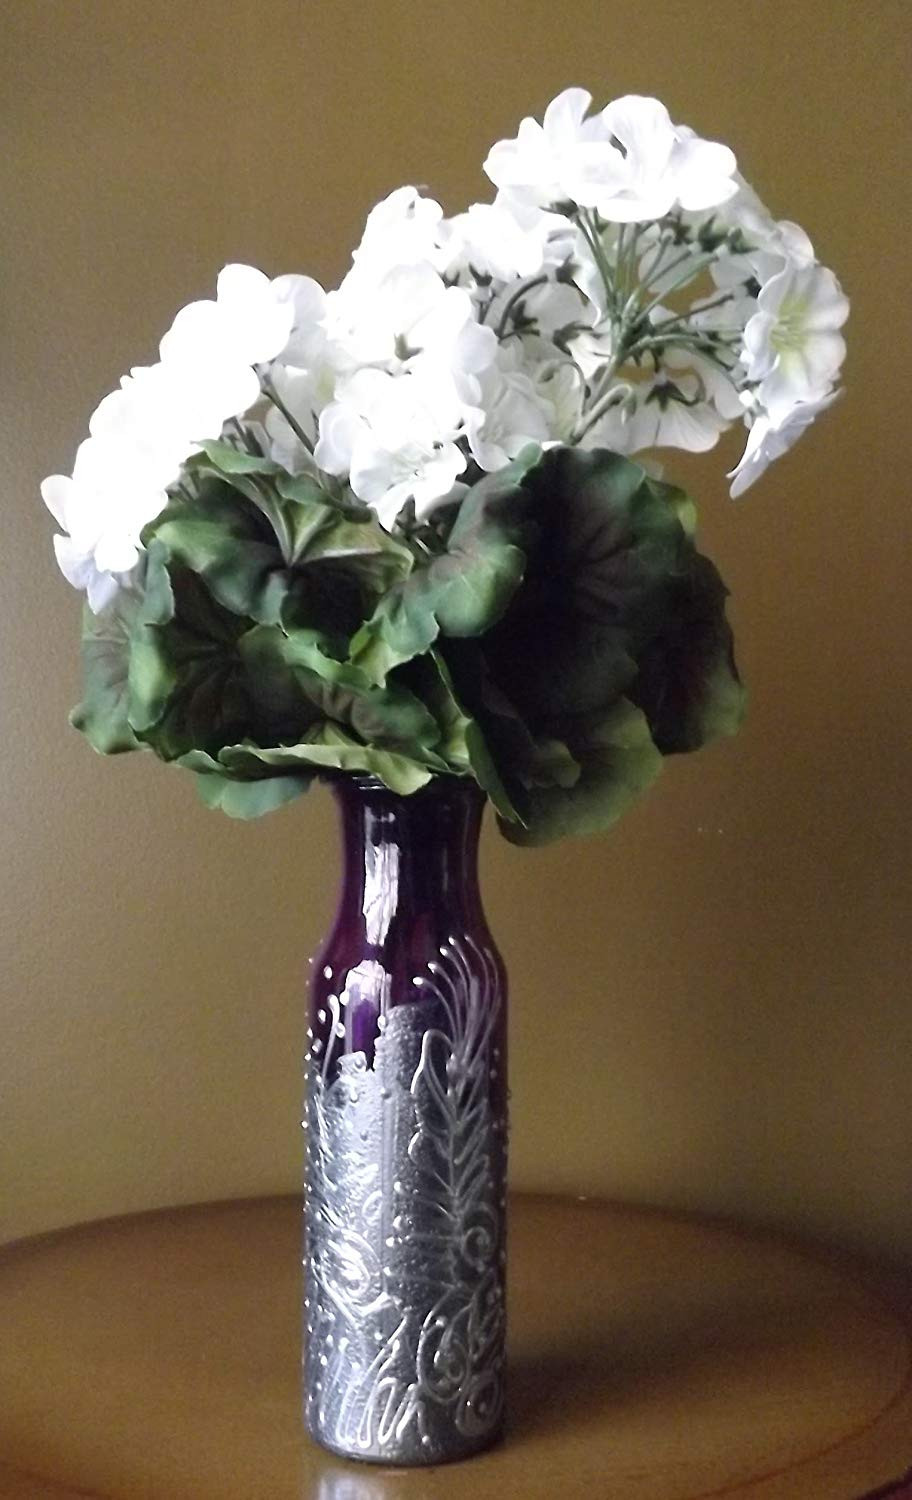 Ceramic Milk Jug Vase Of Amazon Com Silver and Purple Milk Bottle Vase Handmade with Regard to 8186od 8nxl Sl1500